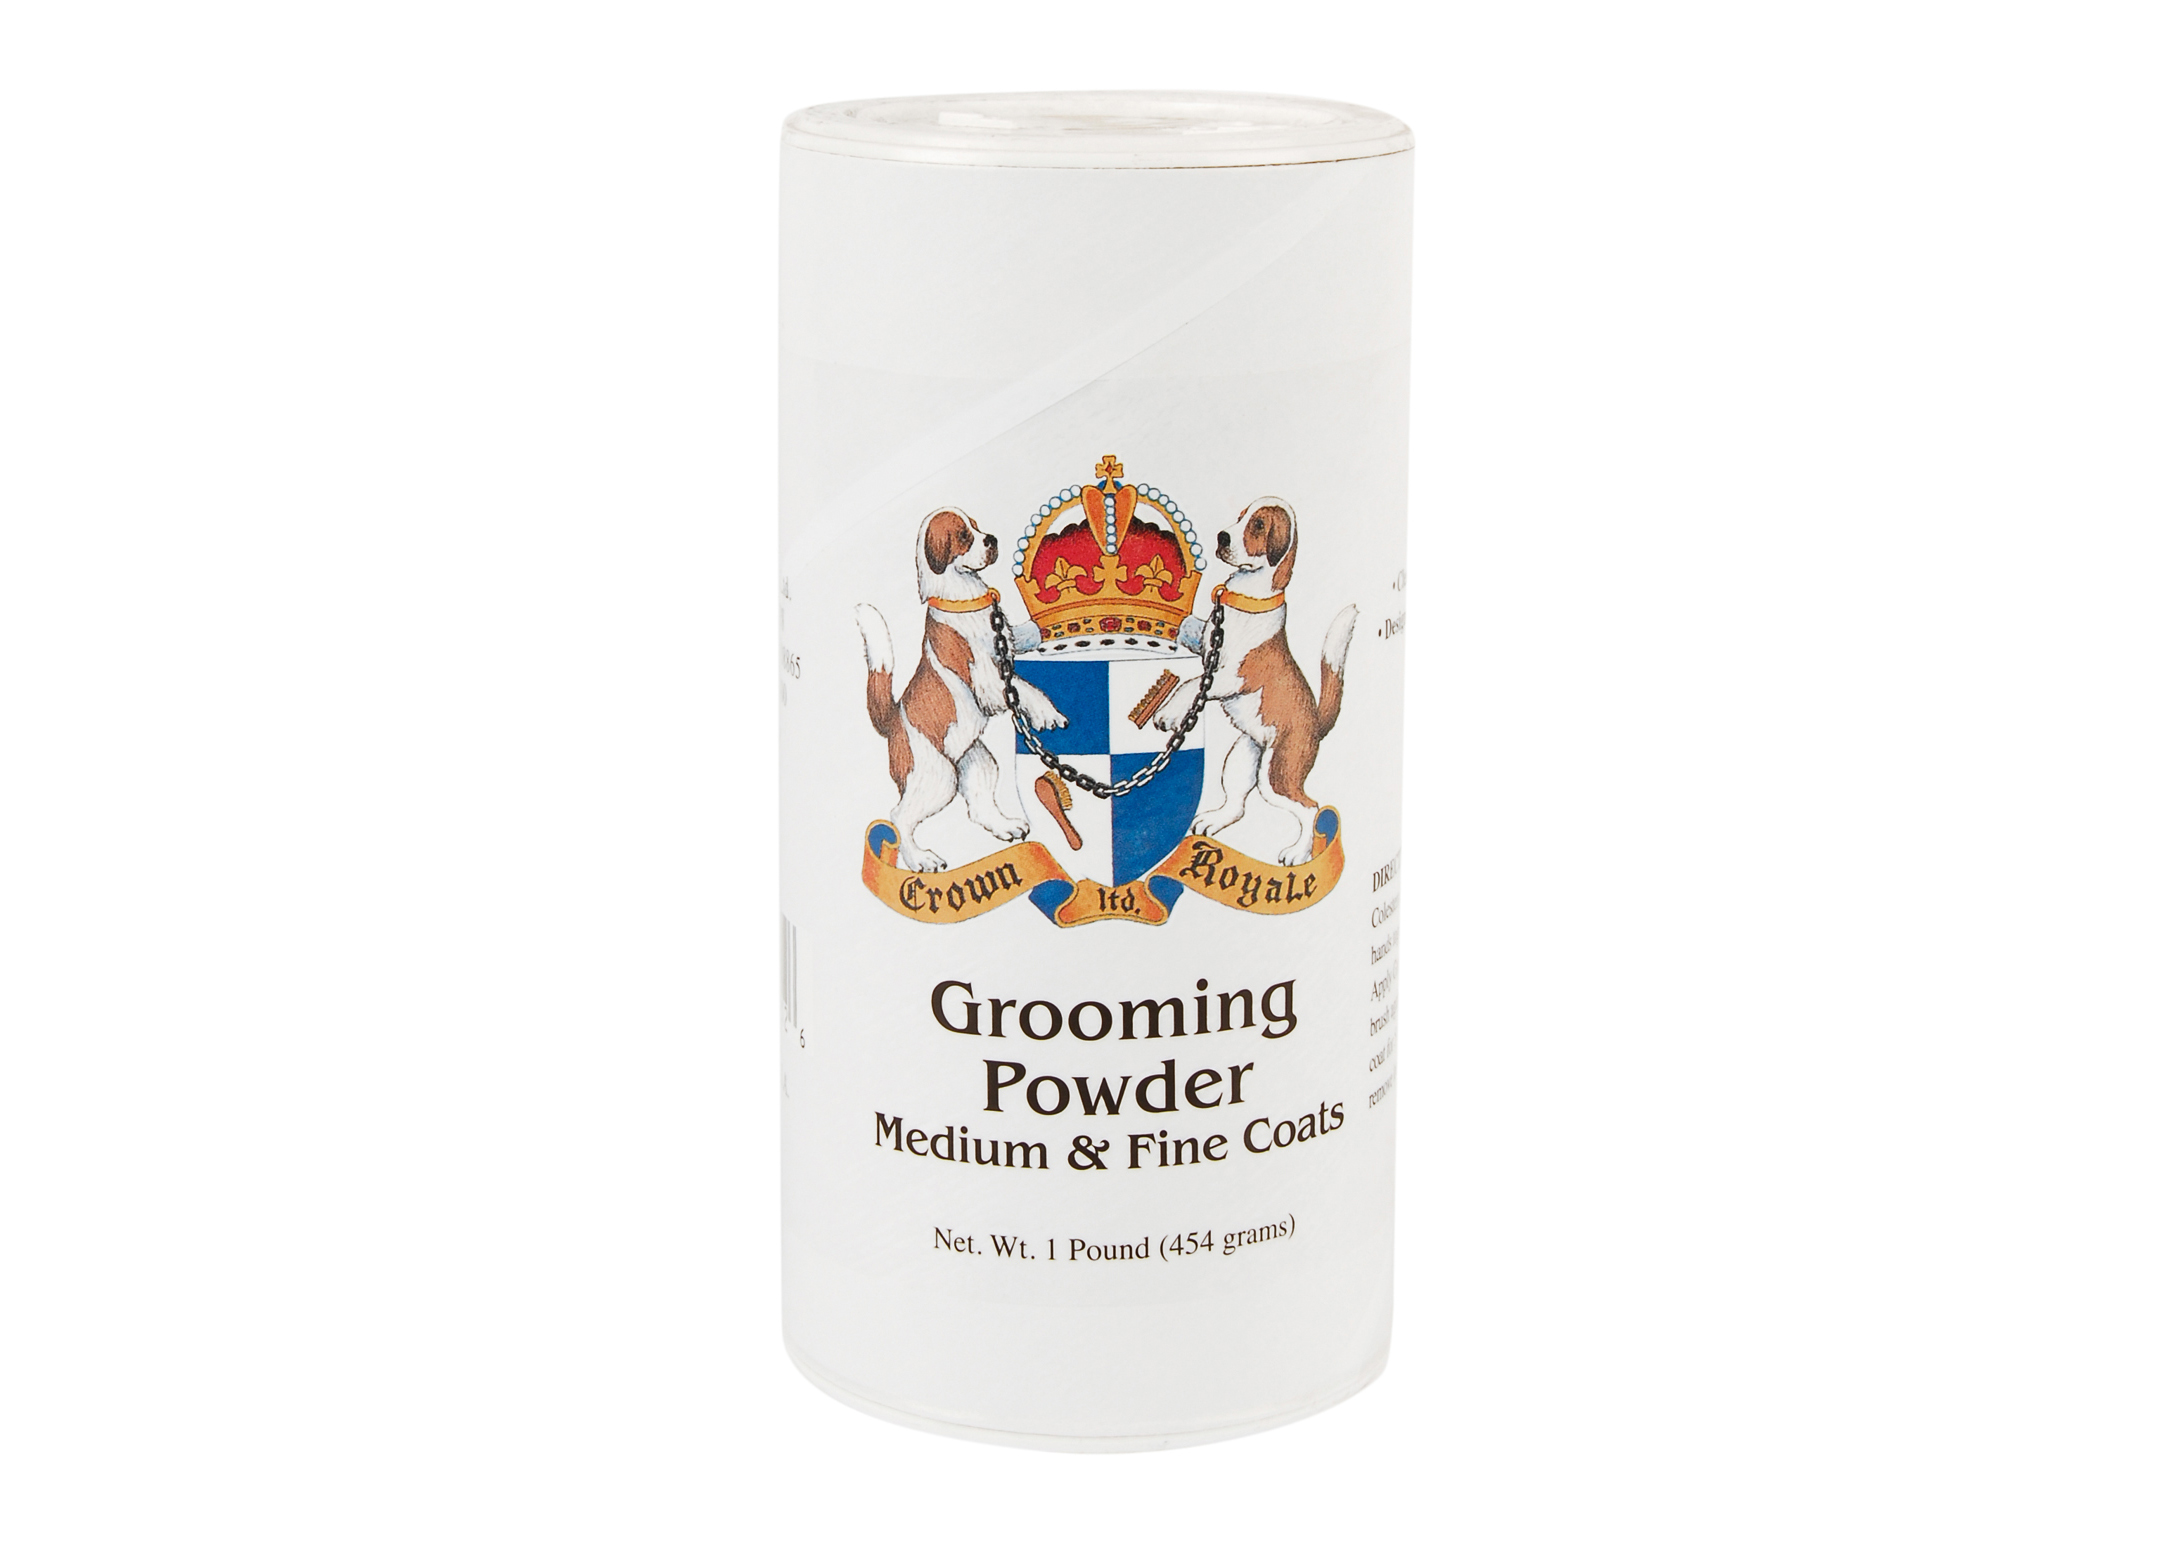 Crown Royale Grooming Powder Poils Fine & Medium 450 gr Poudre de toilettage